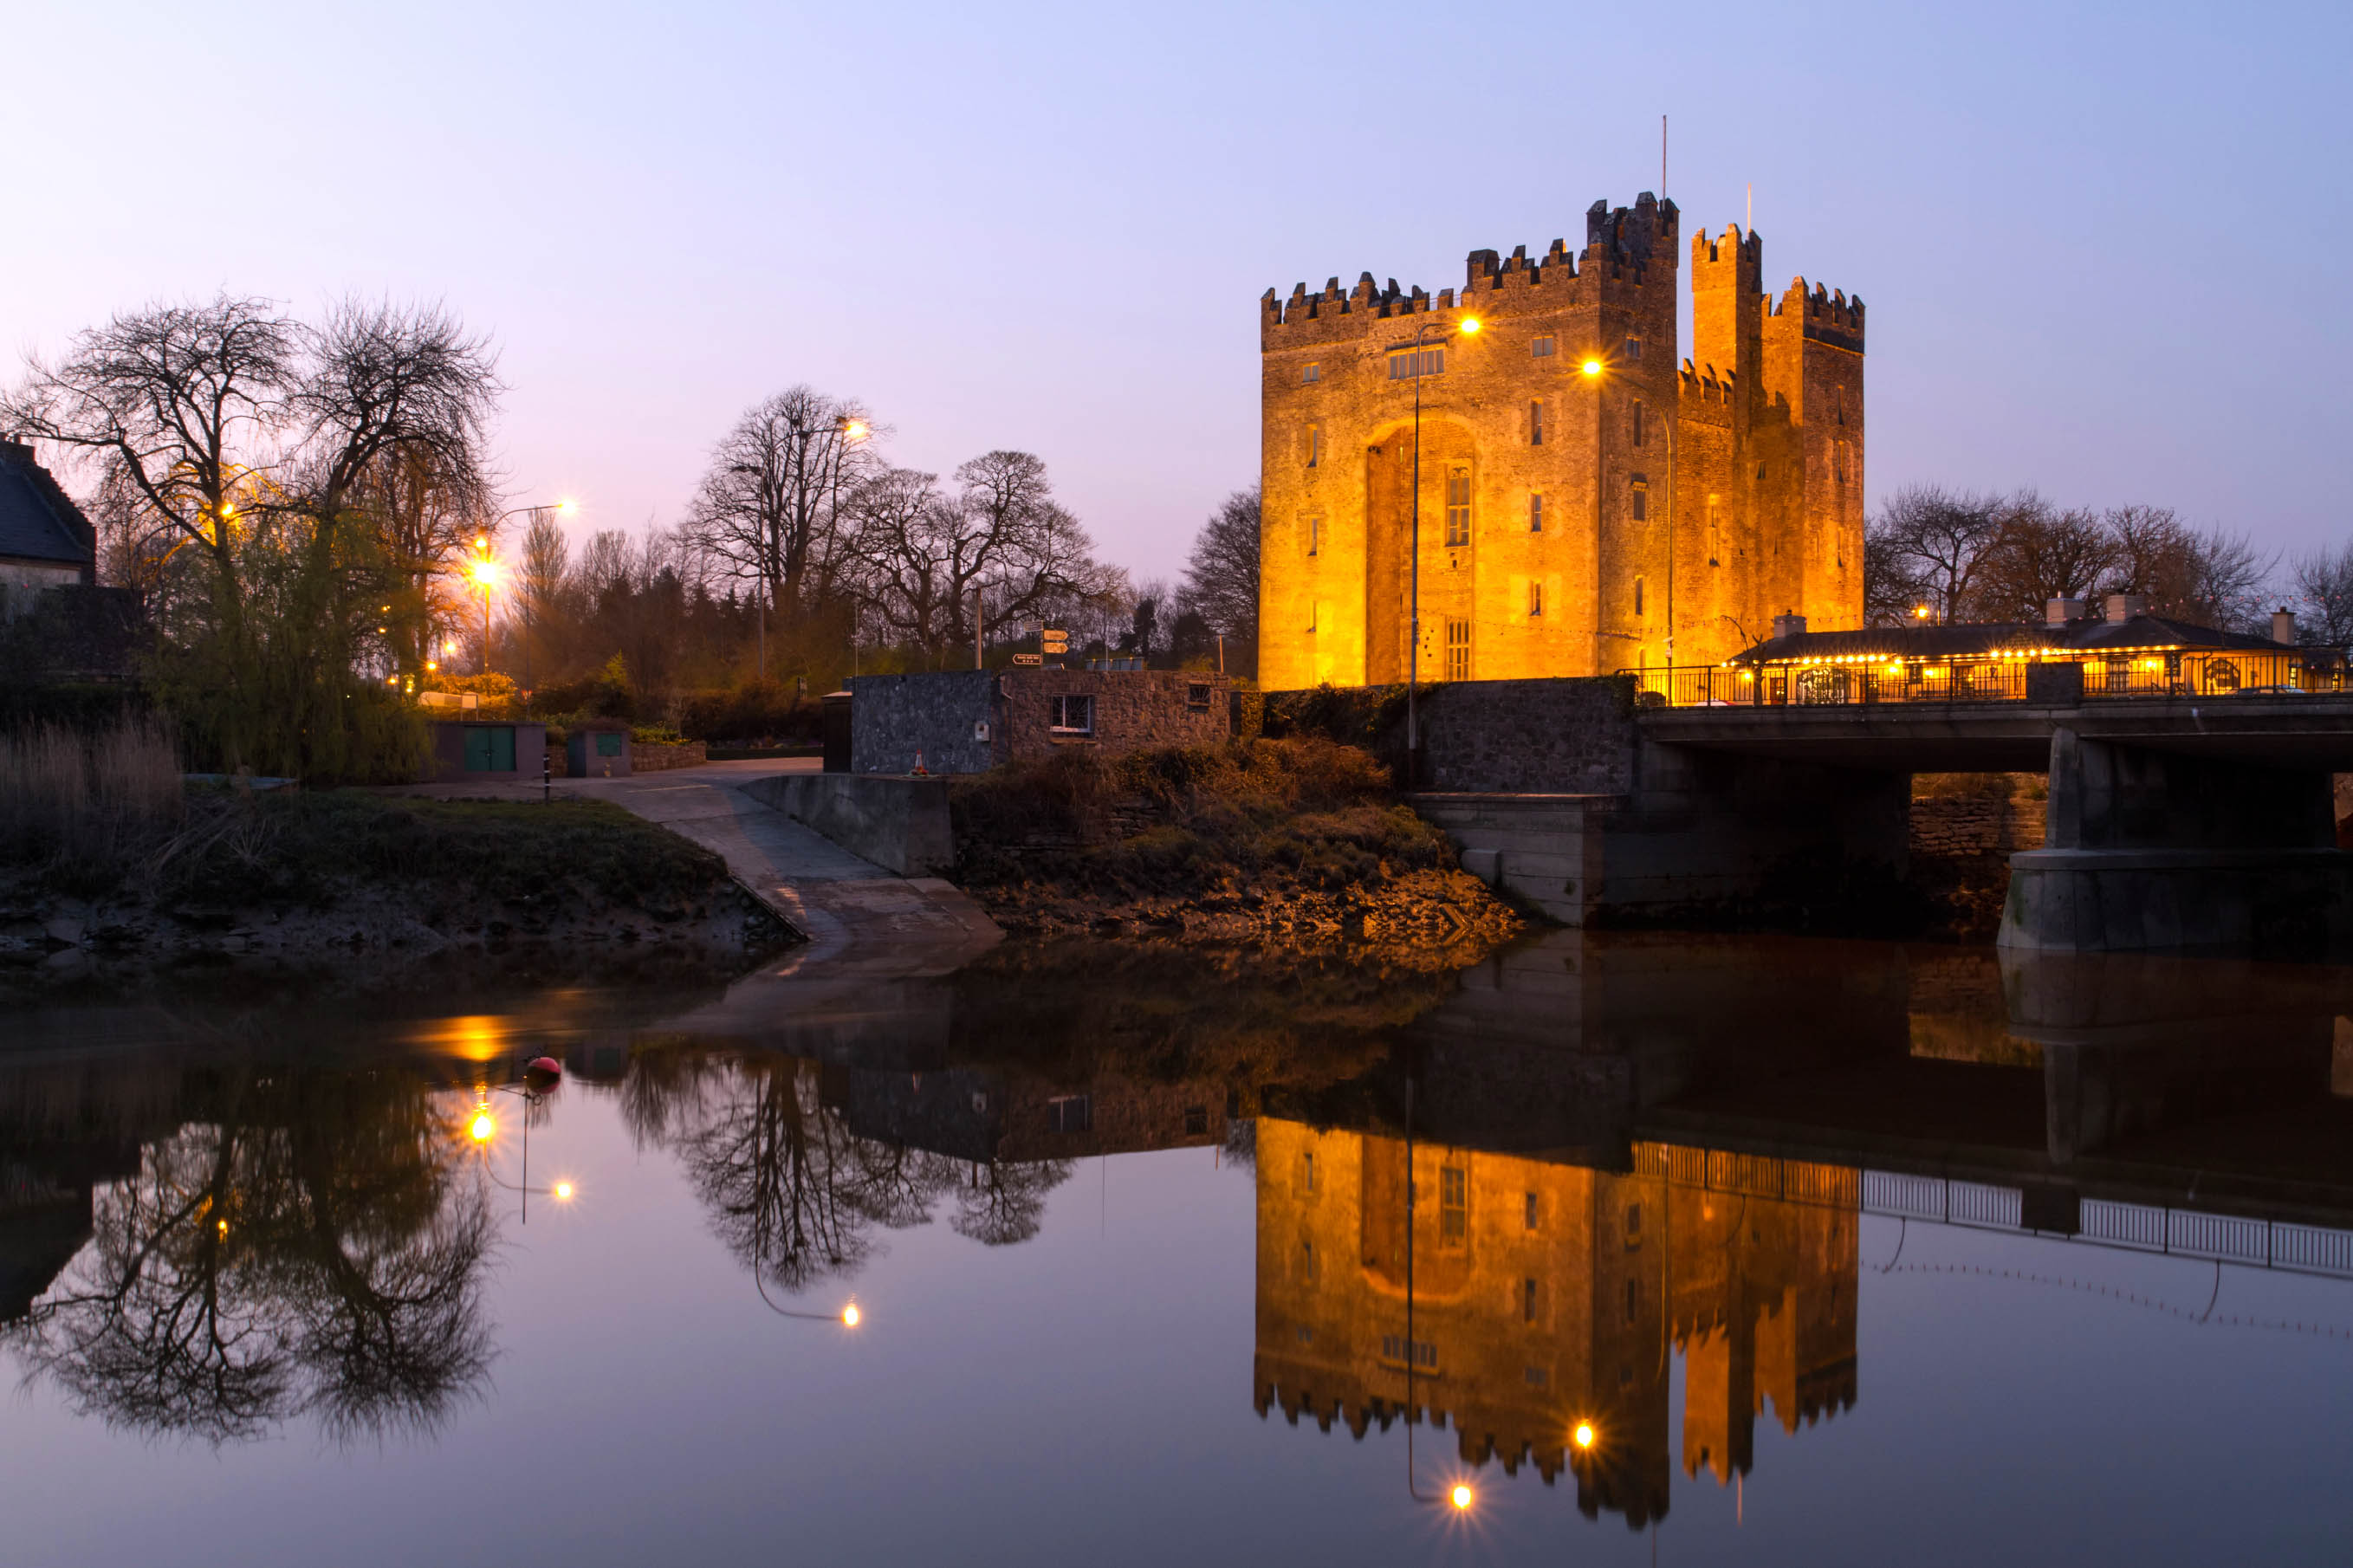 Bunratty Castle in Limerick